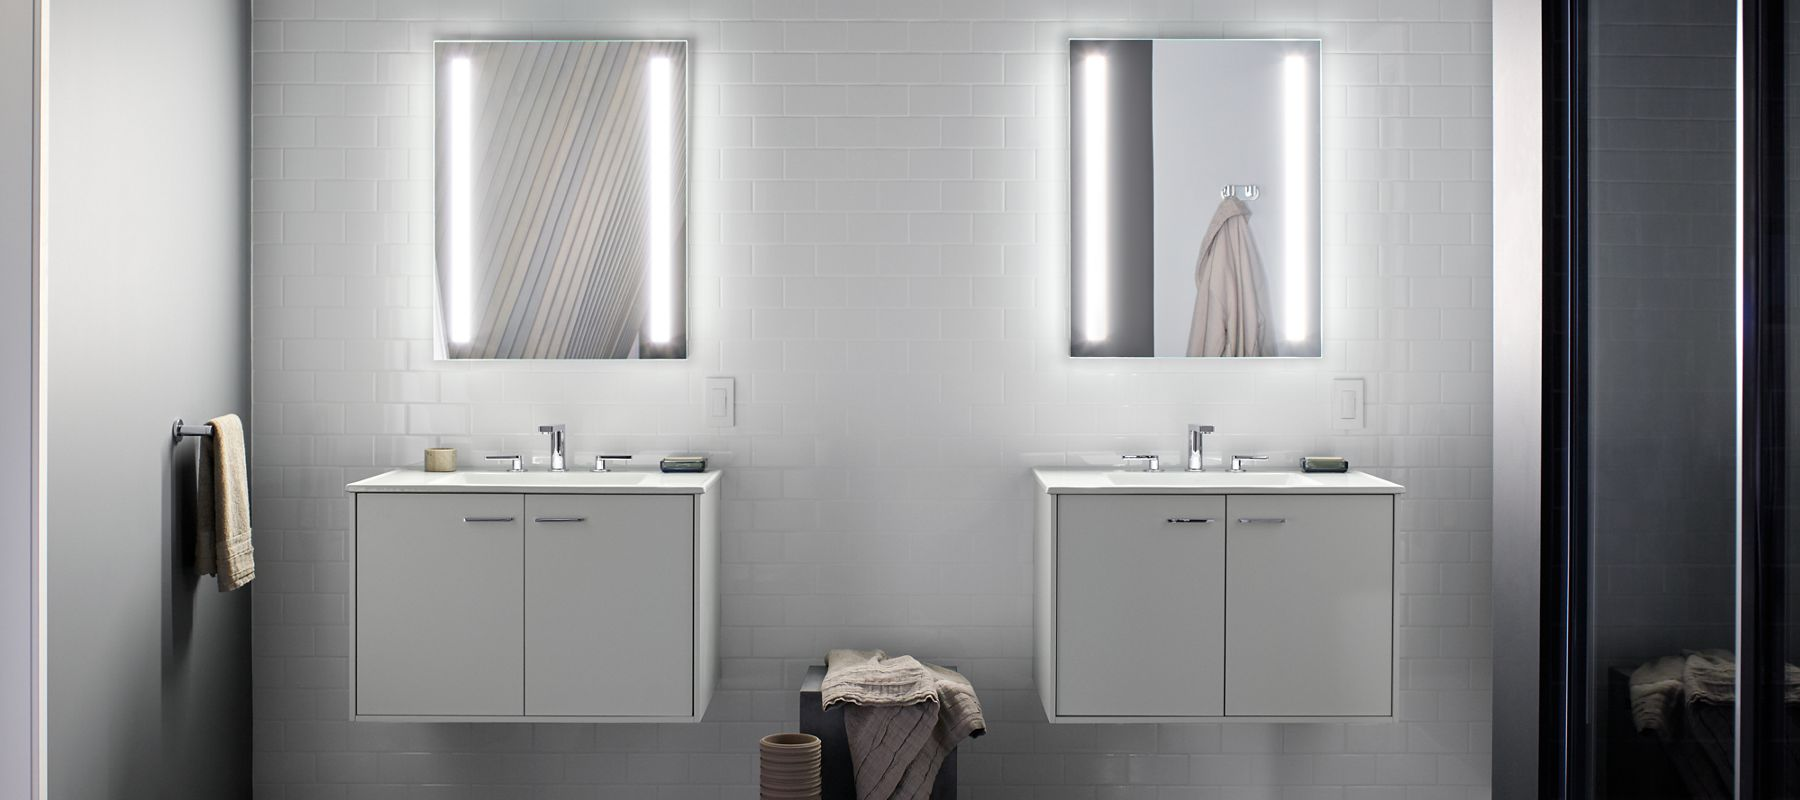 Verdera Lighted Mirrors Medicine Cabinets